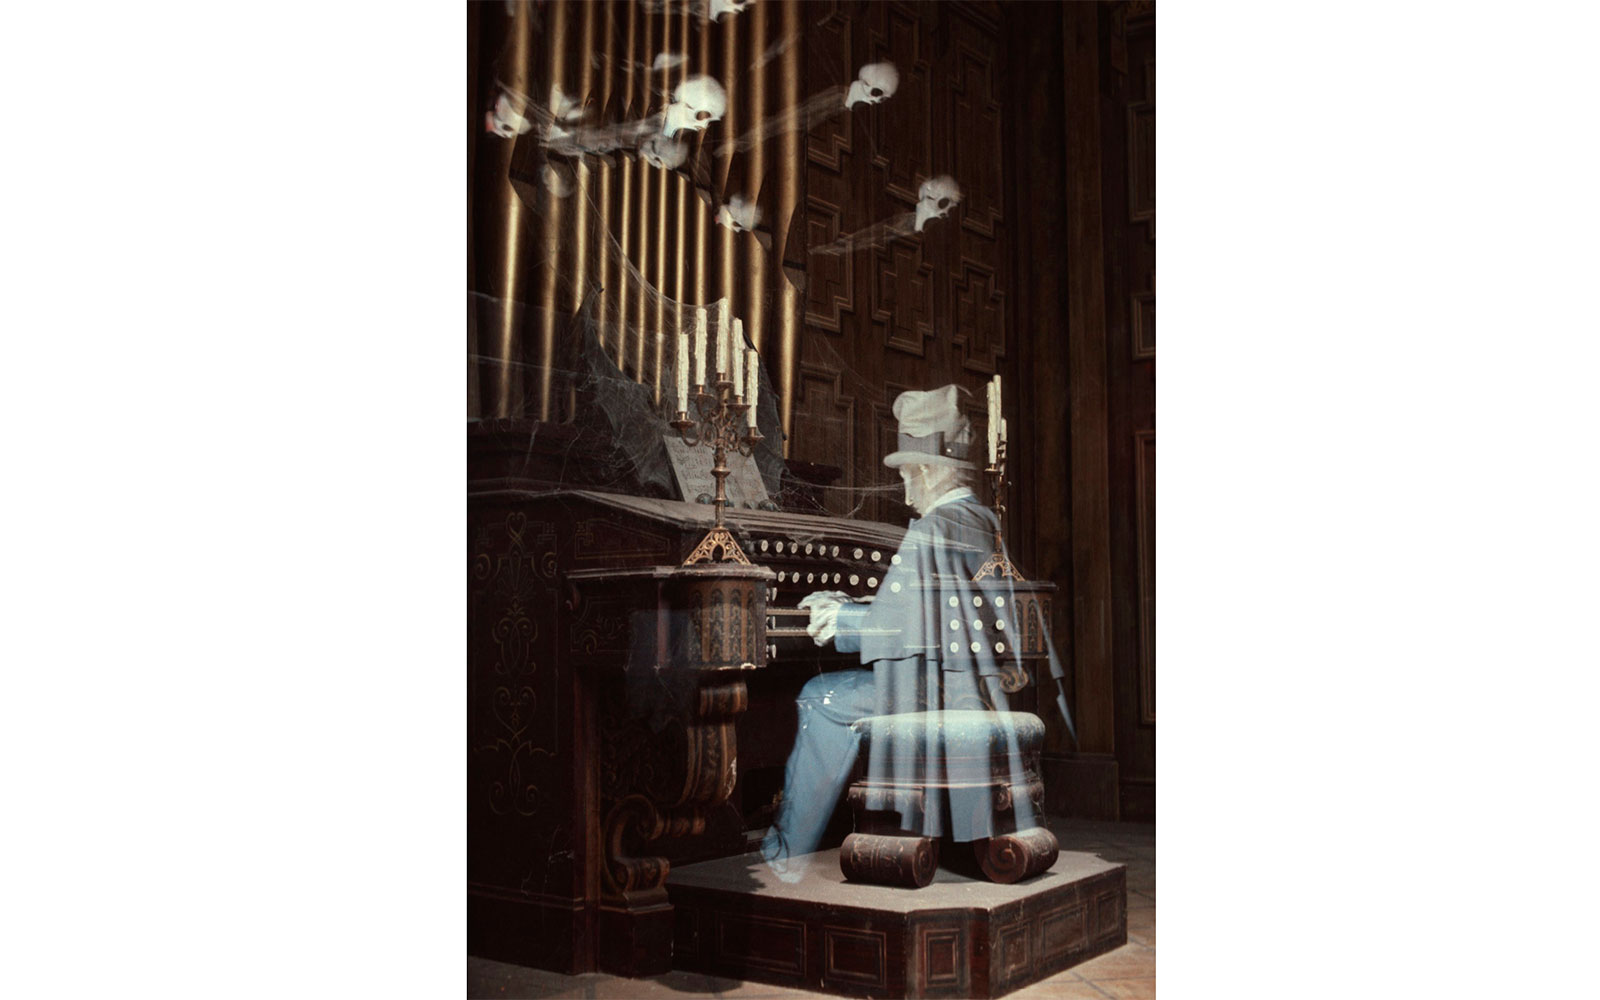 Things You Didn't Know About Disney Parks: Haunted Mansion organ